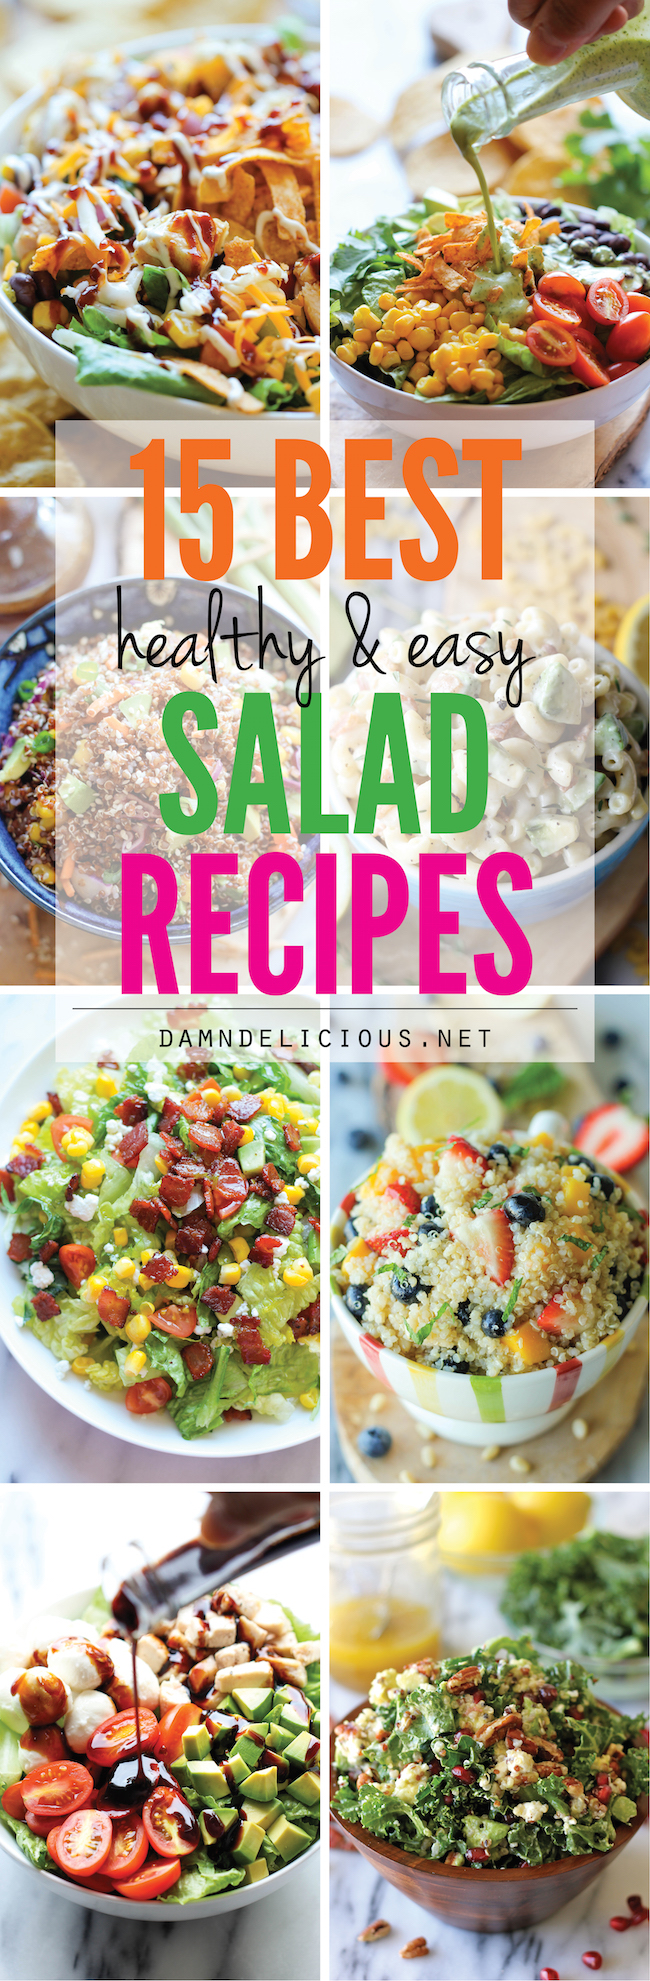 15 best healthy and easy salad recipes damn delicious 15 best healthy and easy salad recipes easy fresh and healthy salad recipes forumfinder Image collections